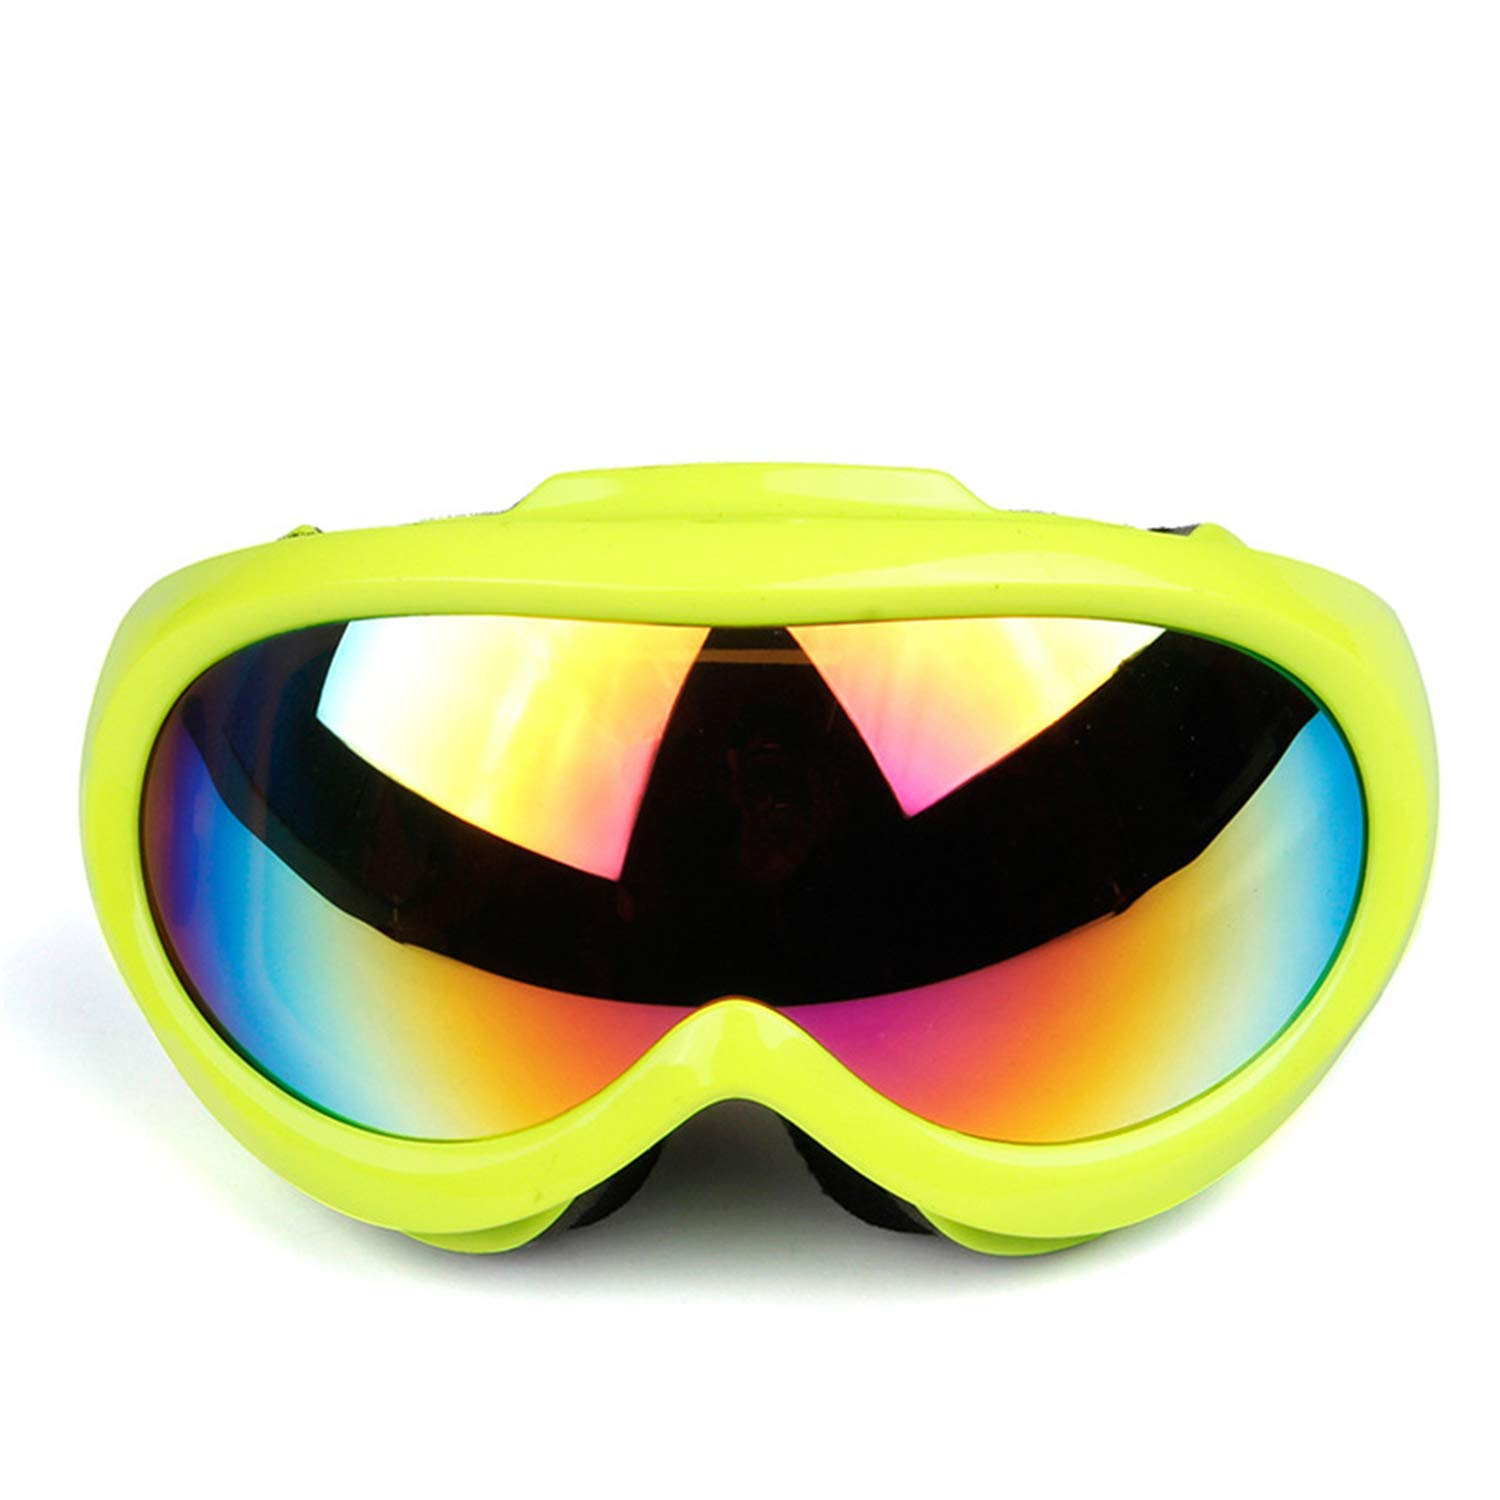 Green Exquisite goggles Ski Goggles Sunglasses Mask Boy Girl Anti-fog Kids Winter Snow Outdoor Sports Off-road Riding Anti-UV Windproof Snowboarding17cm (color   bluee)